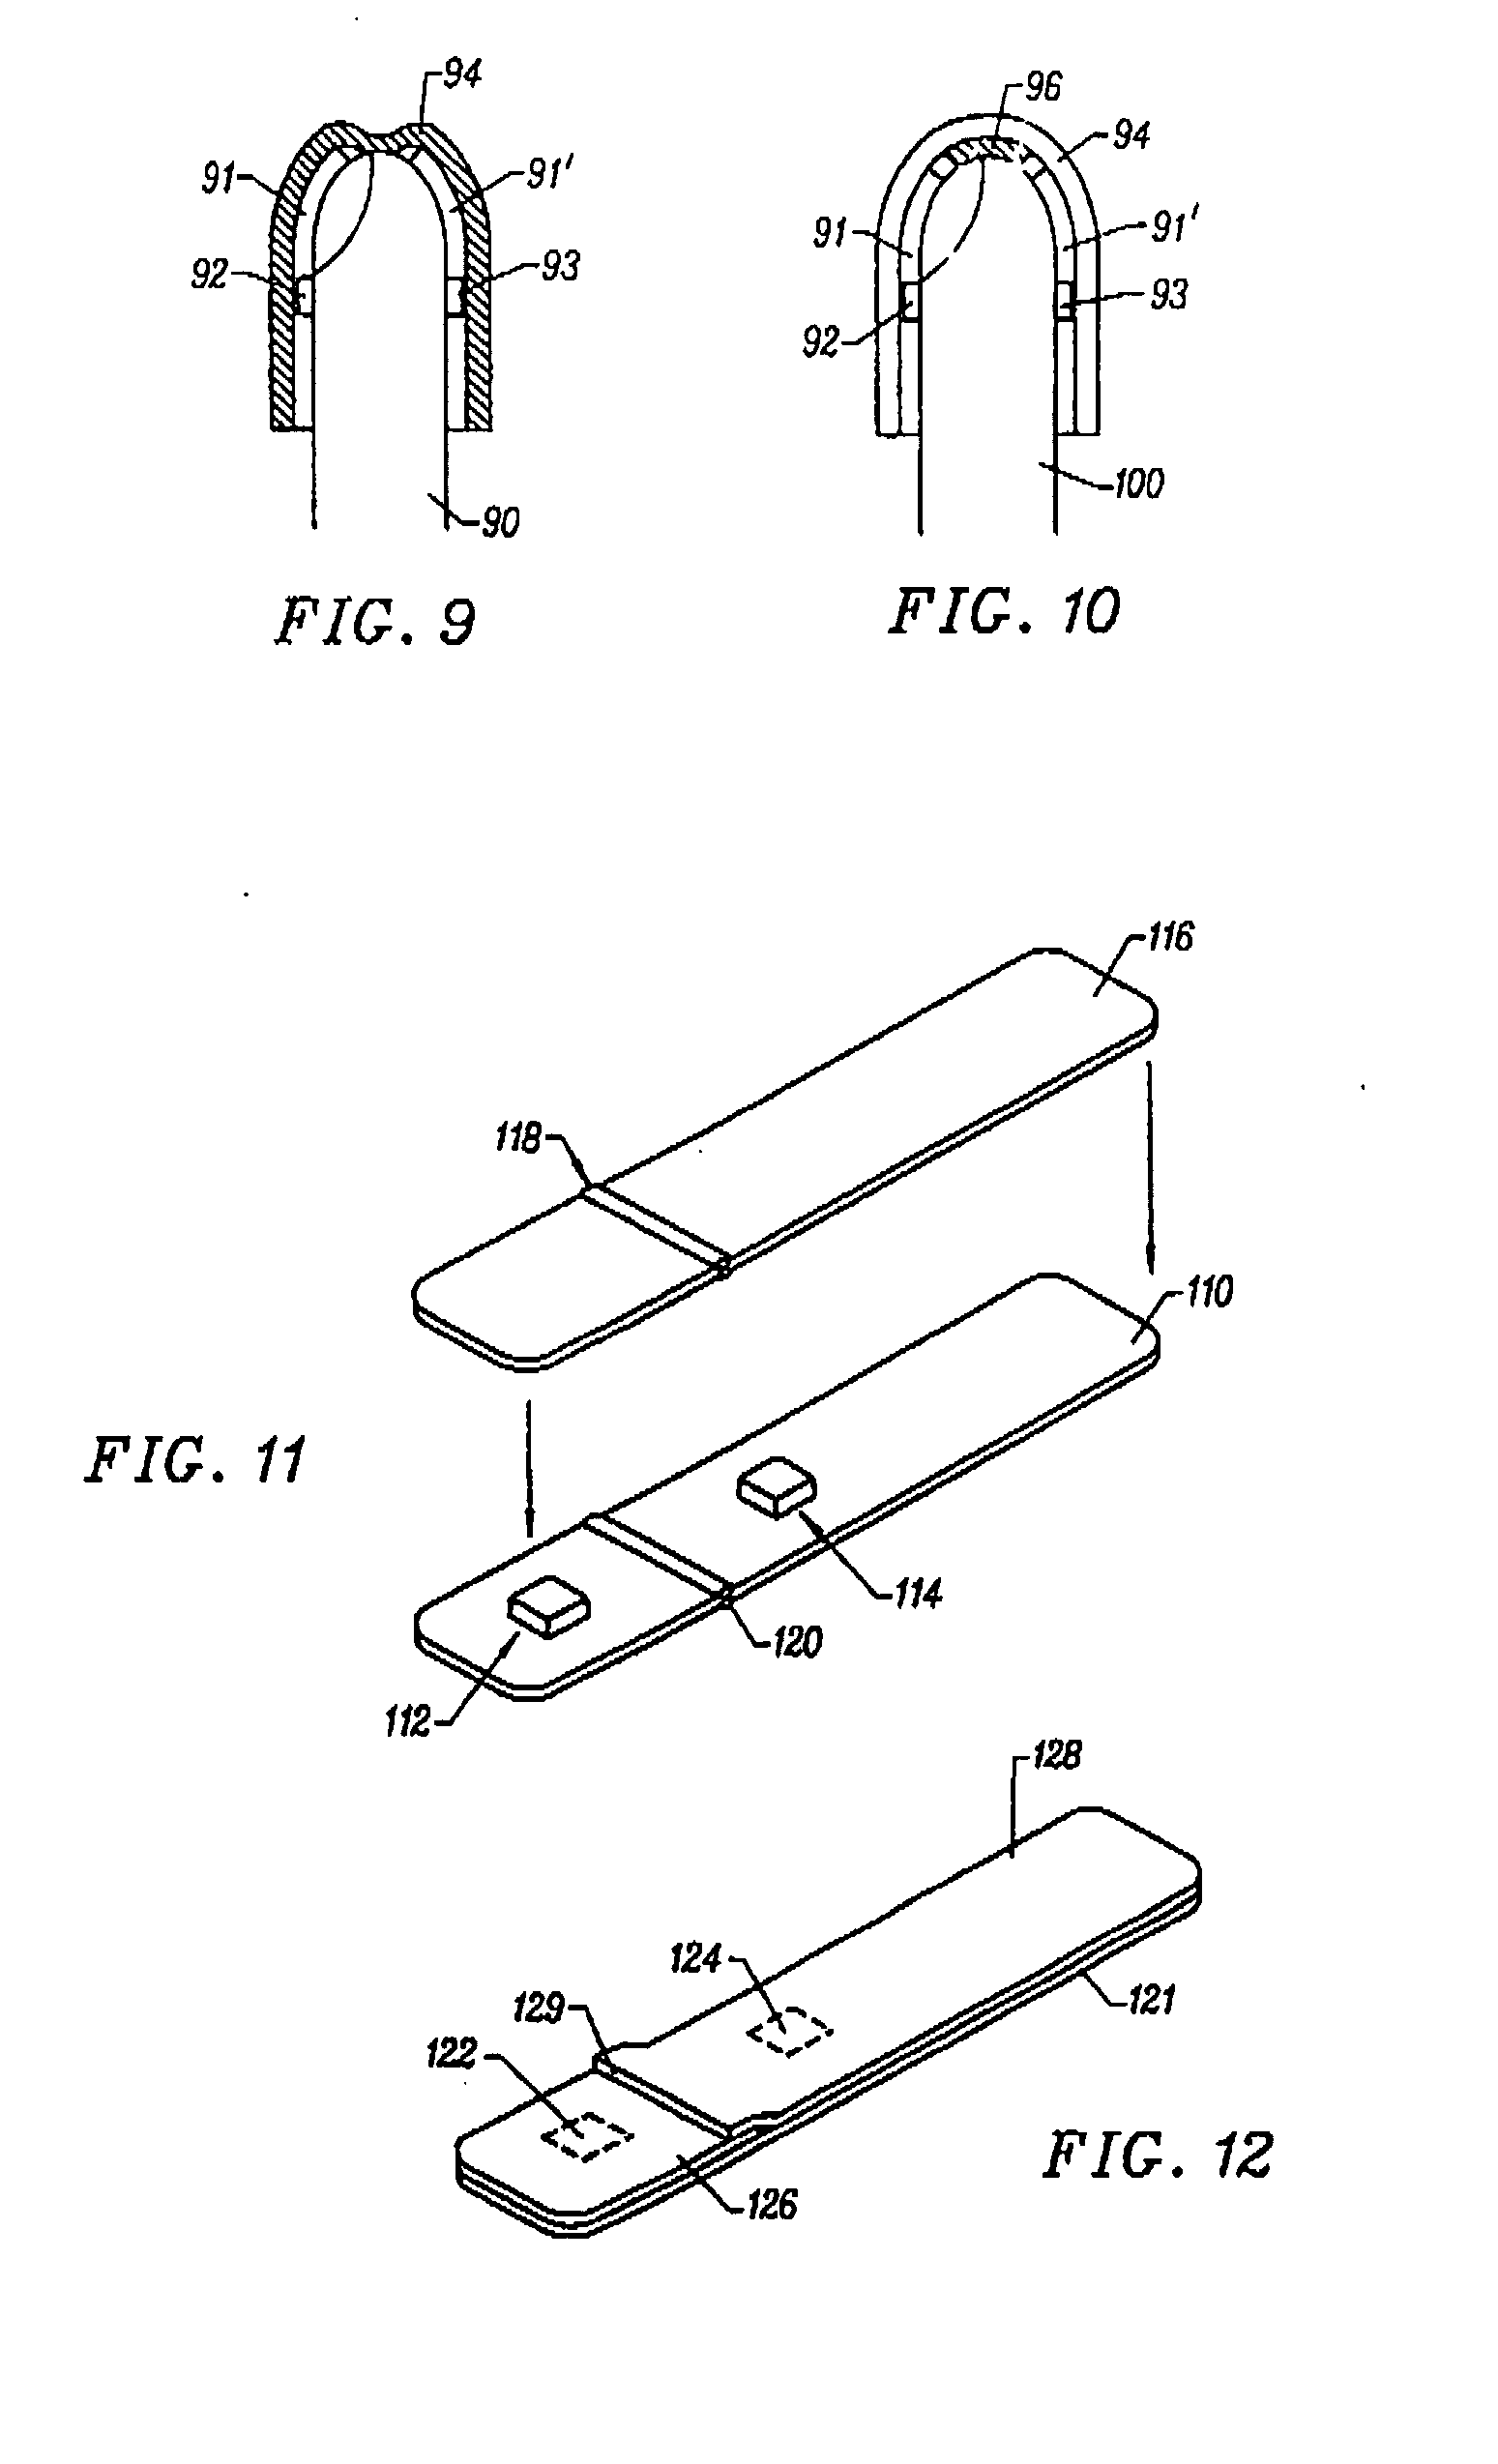 patent us20070015982 - shunt barrier in pulse oximeter sensor